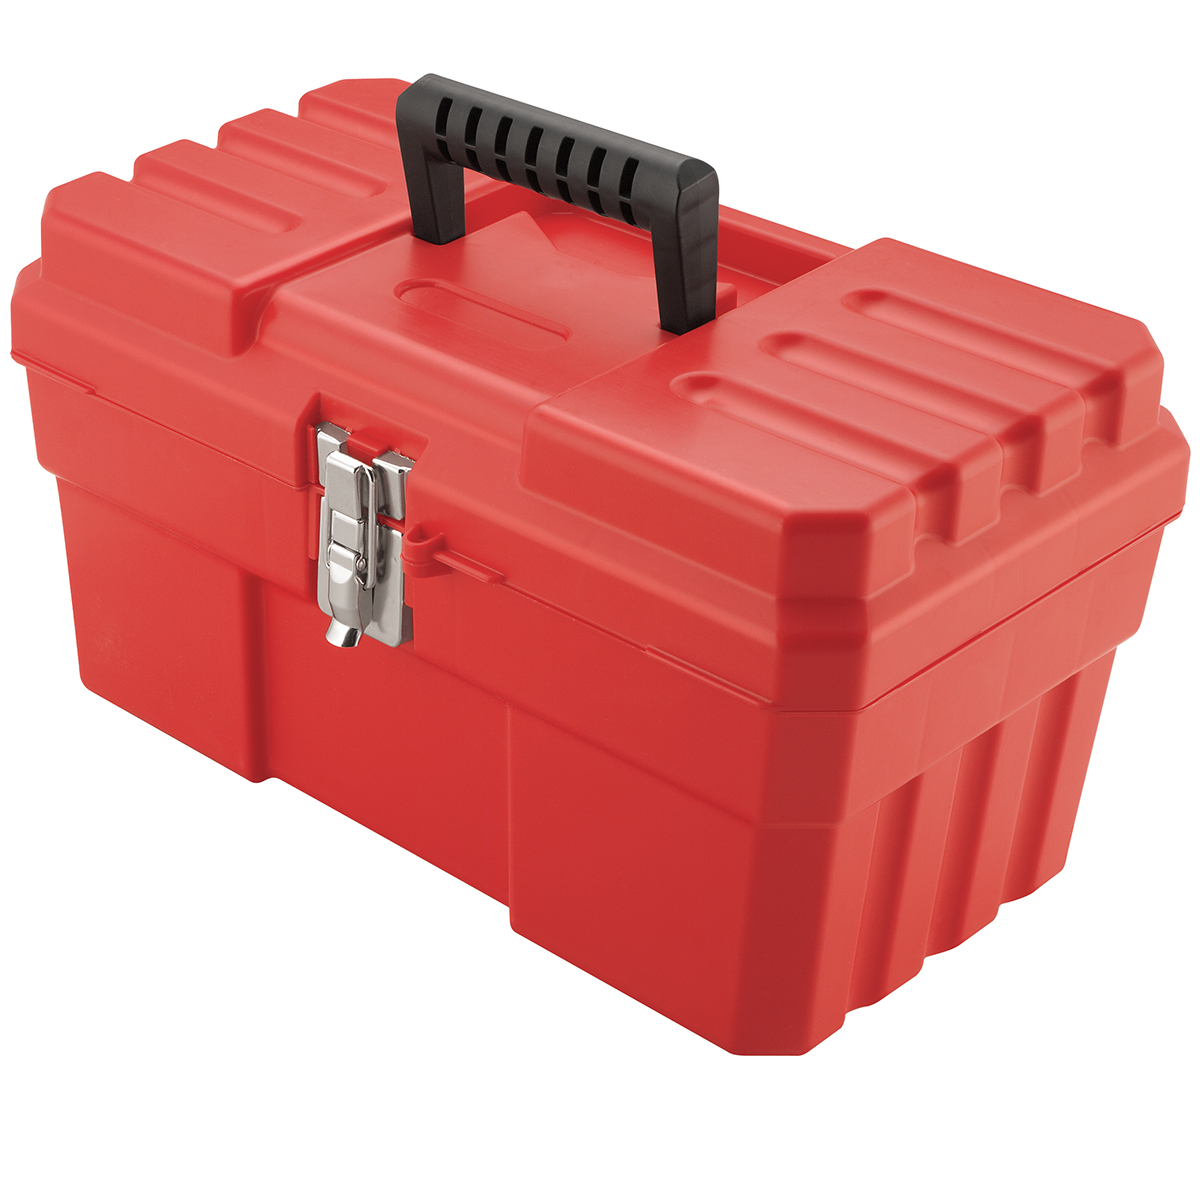 ProBox Toolbox 14 x 8-1/8 x 8-1/8, Red (09514).  This item sold in carton quantities of 6.